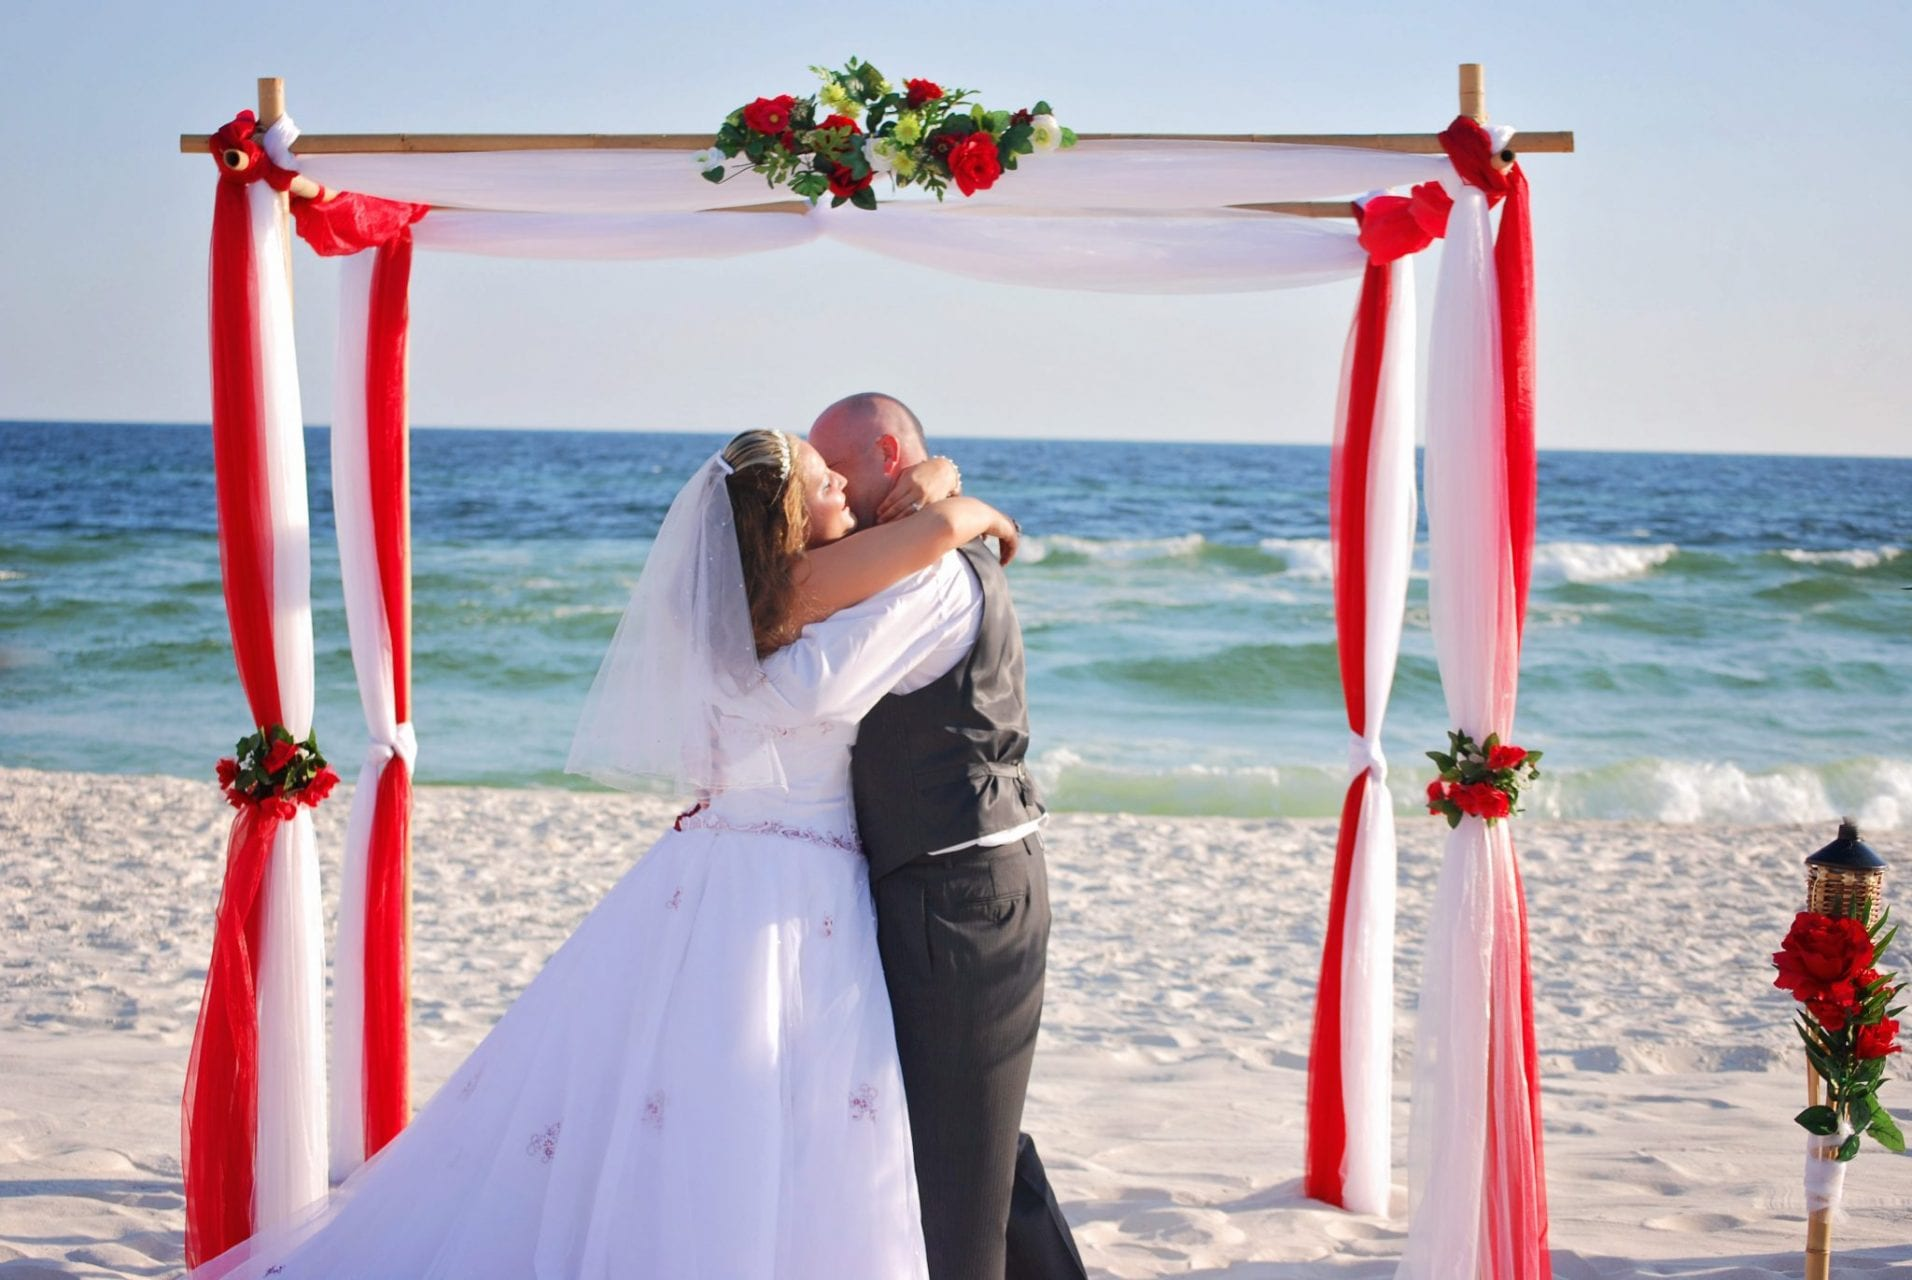 Just married couple kisses under wedding arch on Destin Gulf beach, FL